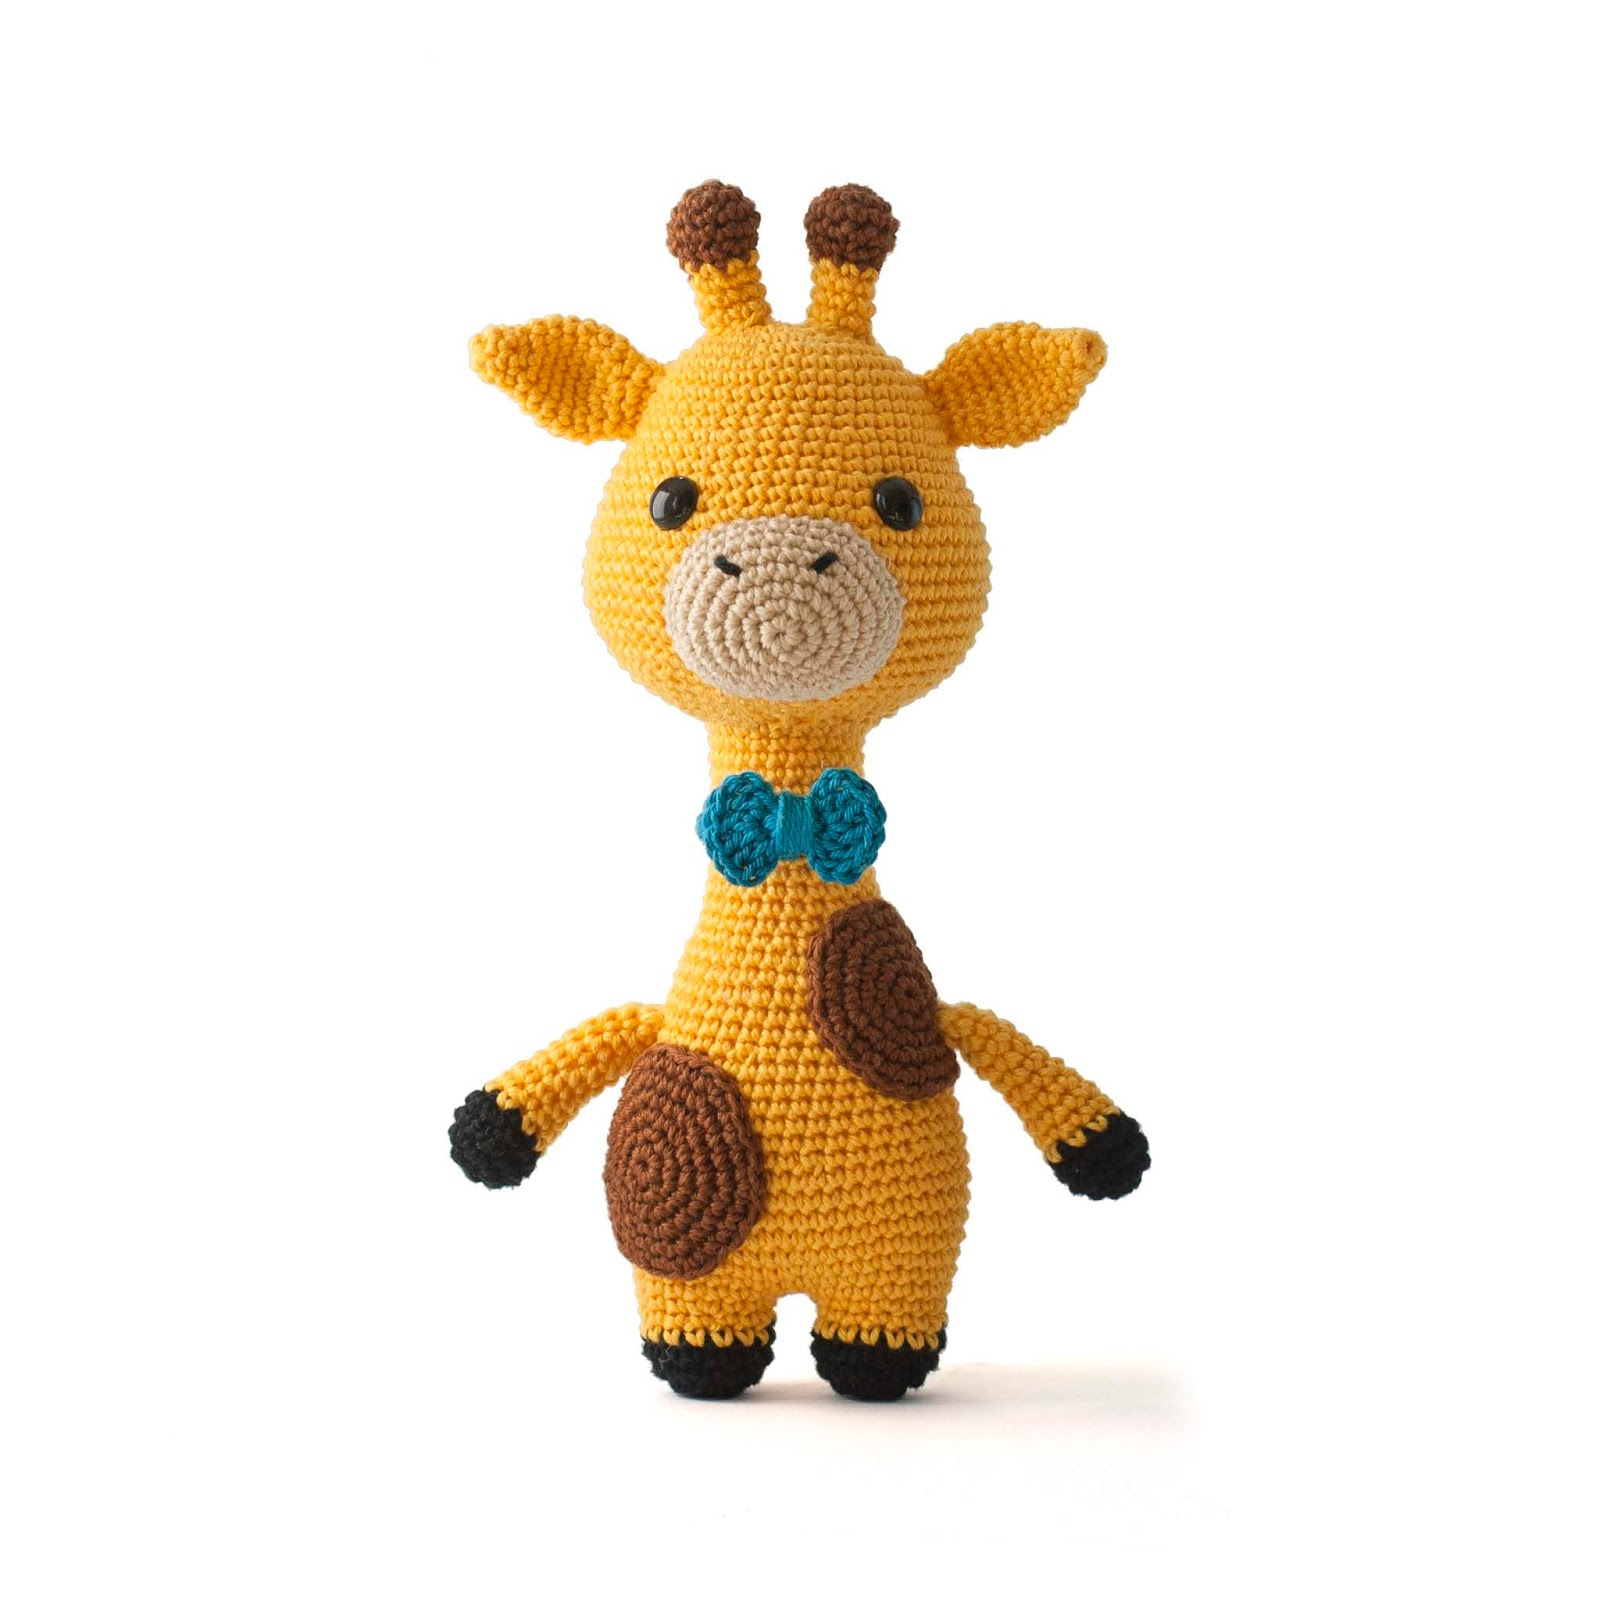 Toy Patterns by DIY Fluffies : James the Giraffe Amigurumi Crochet ...